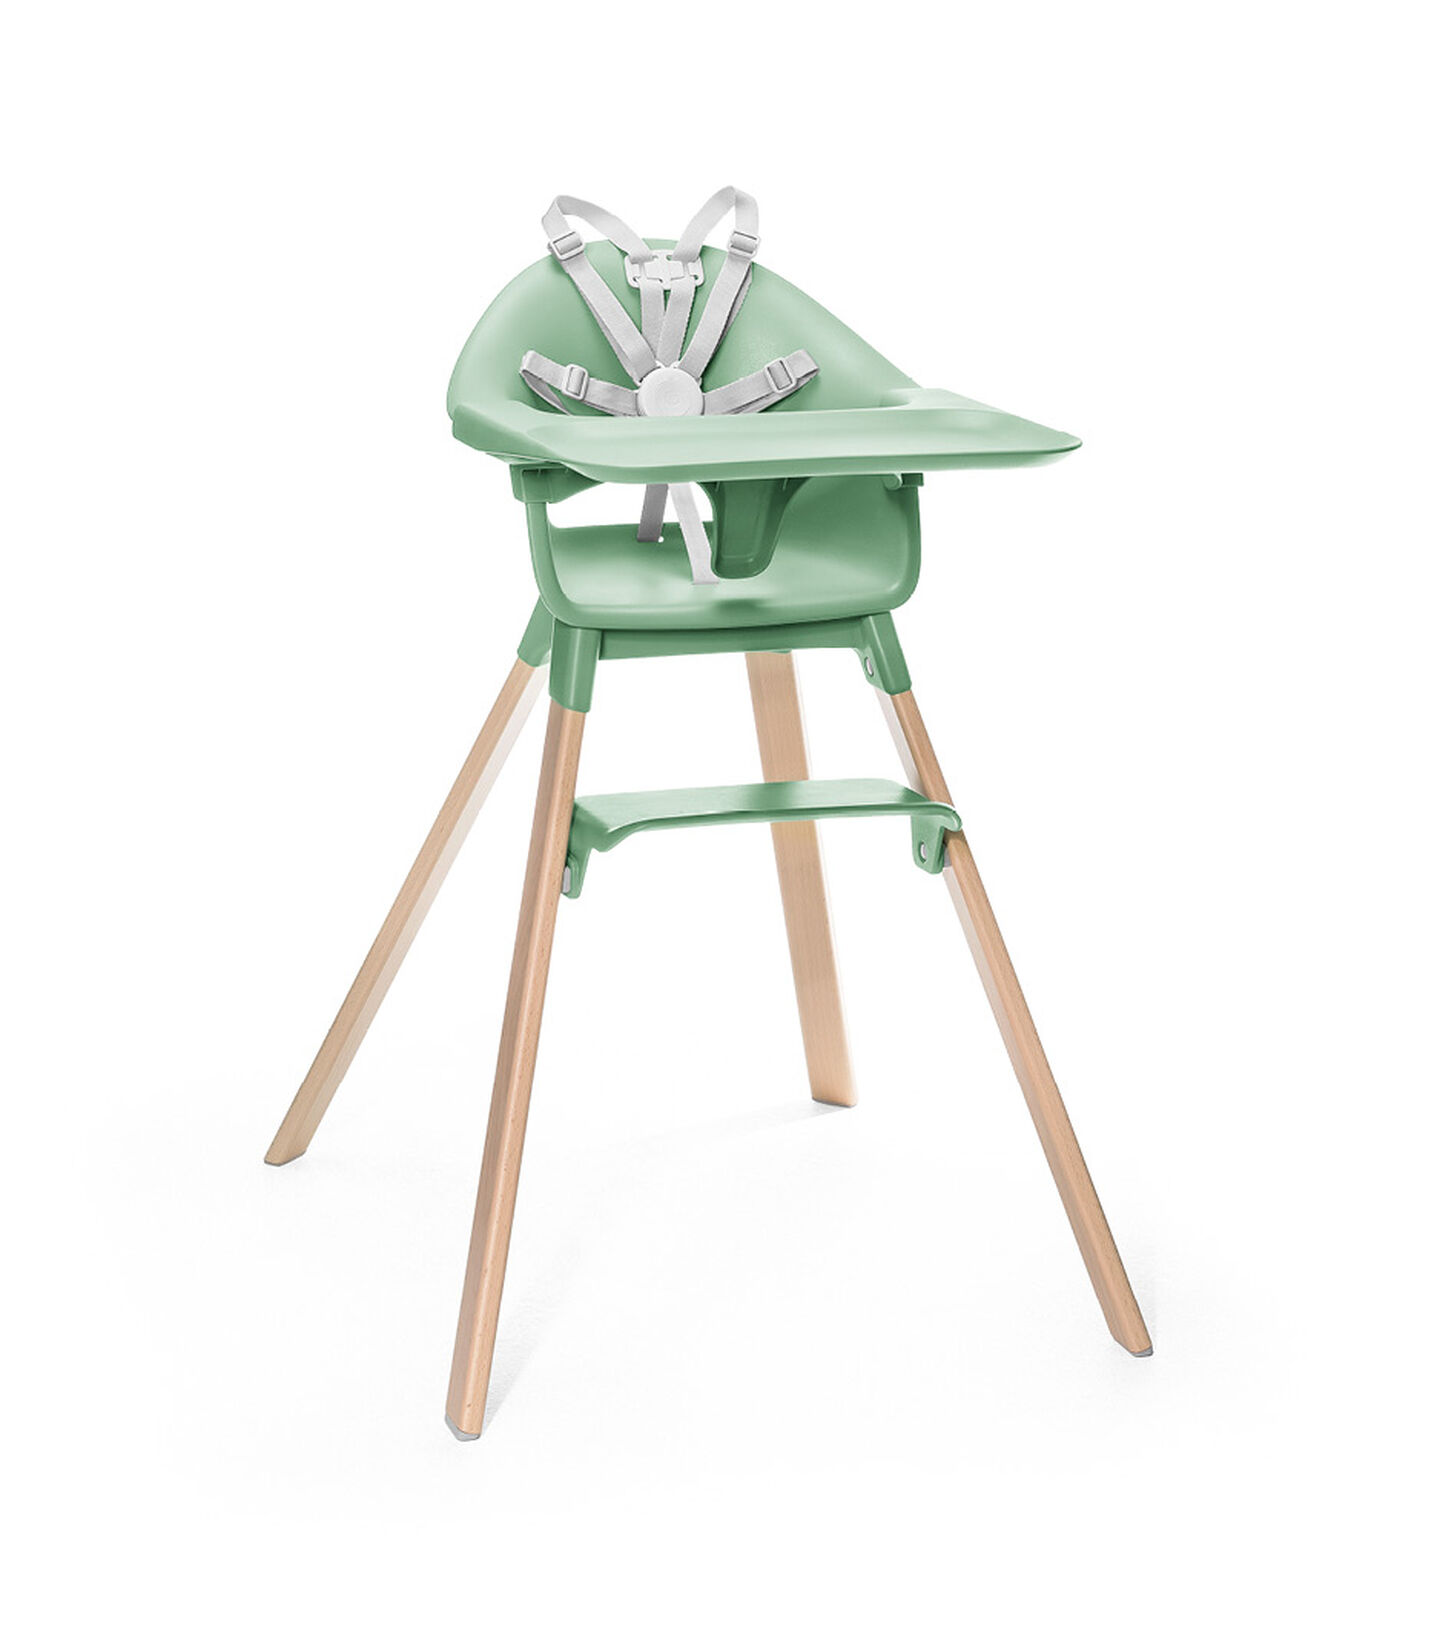 Stokke® Clikk™ High Chair. Natural Beech wood and Clover Green plastic parts. Stokke® Harness and Tray attached. view 1